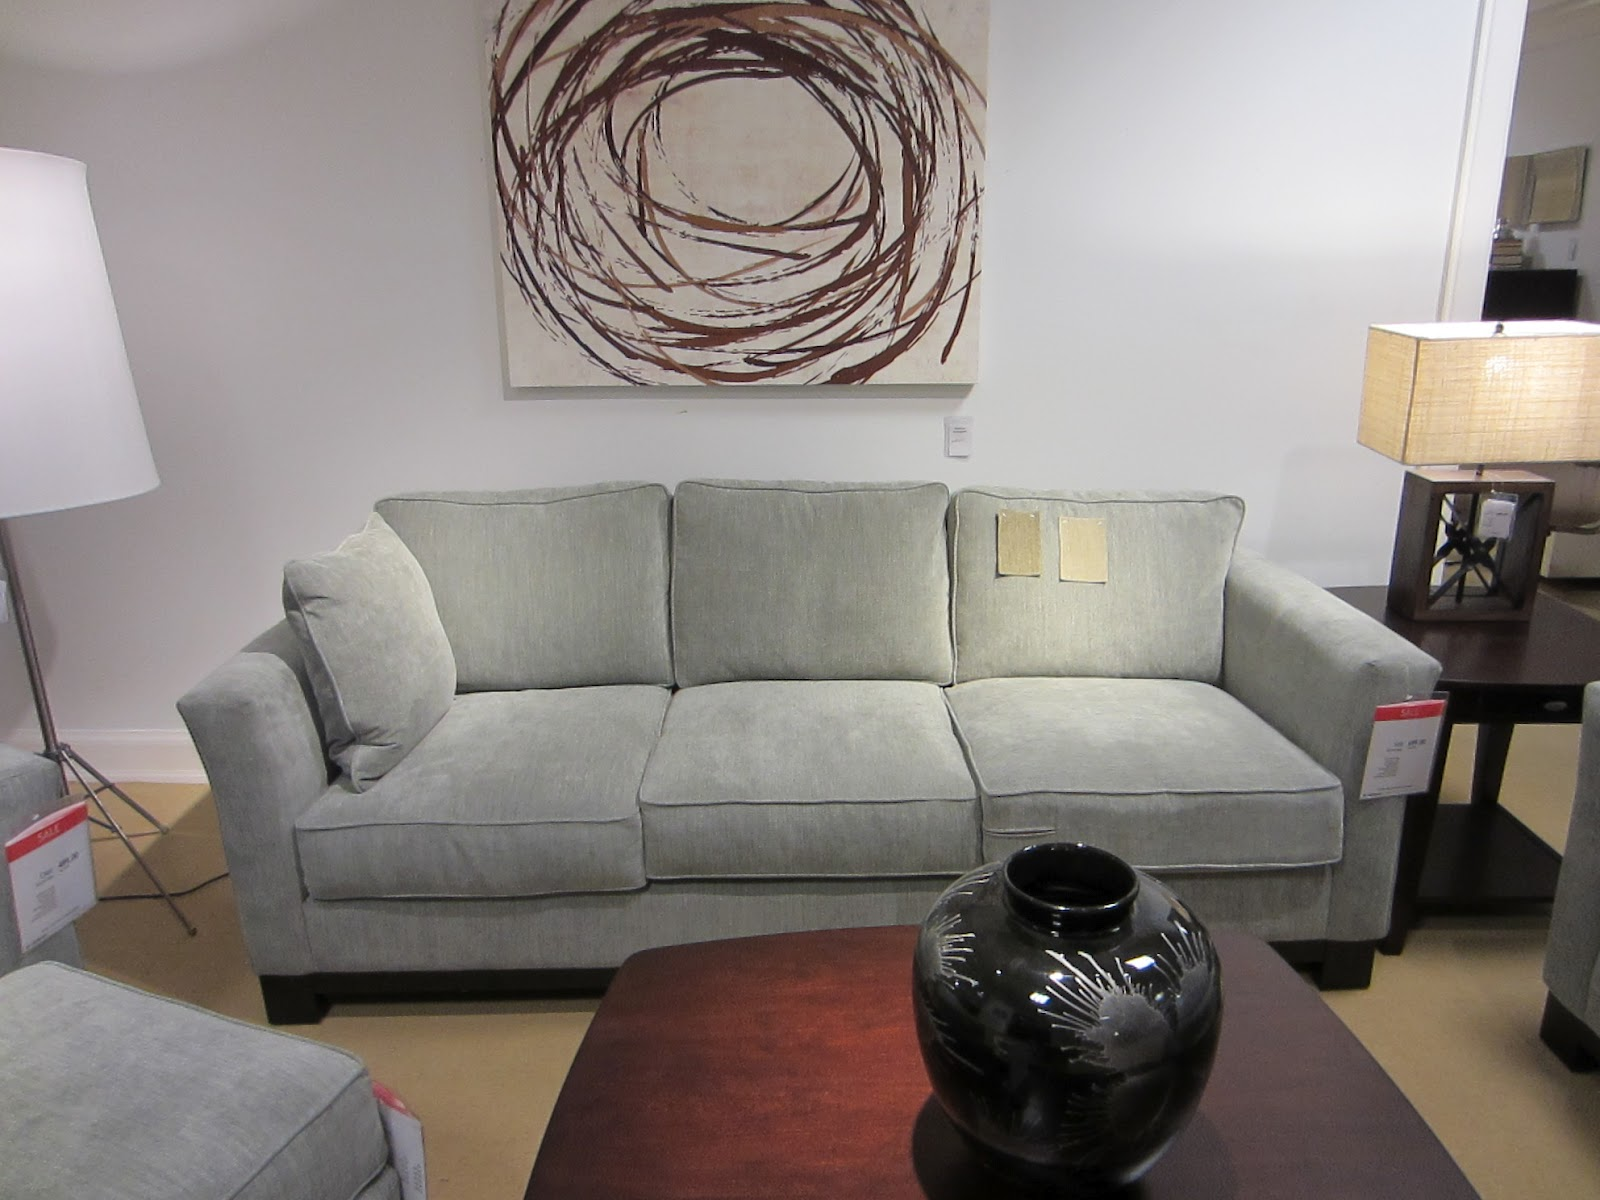 Apartment Furniture – We Found Our Couch! | The Splendid Guide